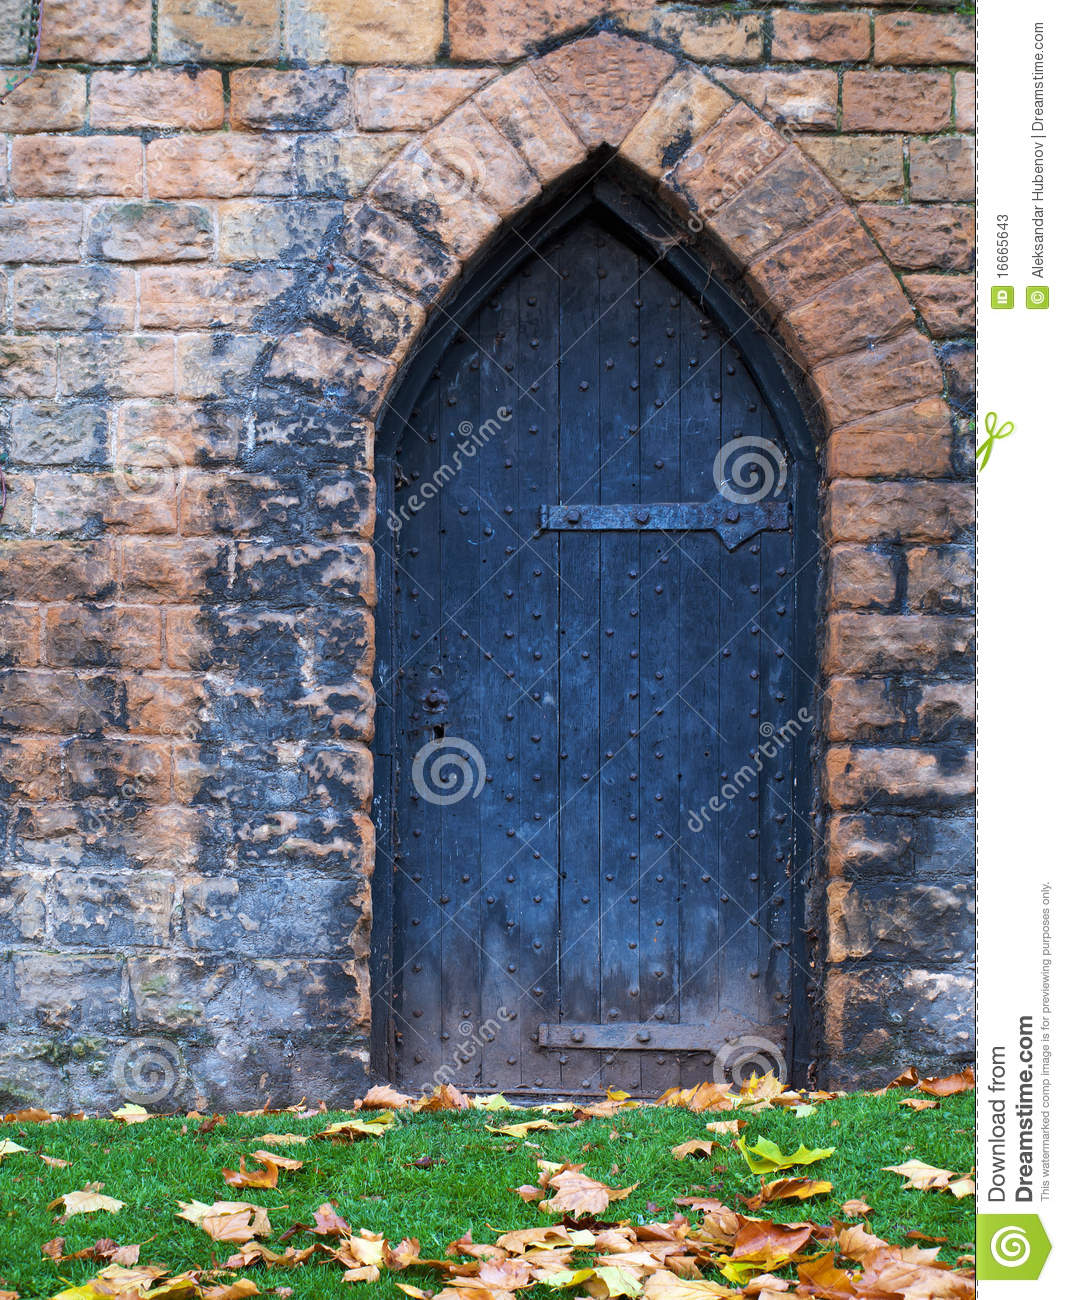 Old castle door stock photos image 16665643 castle door eventelaan Image collections